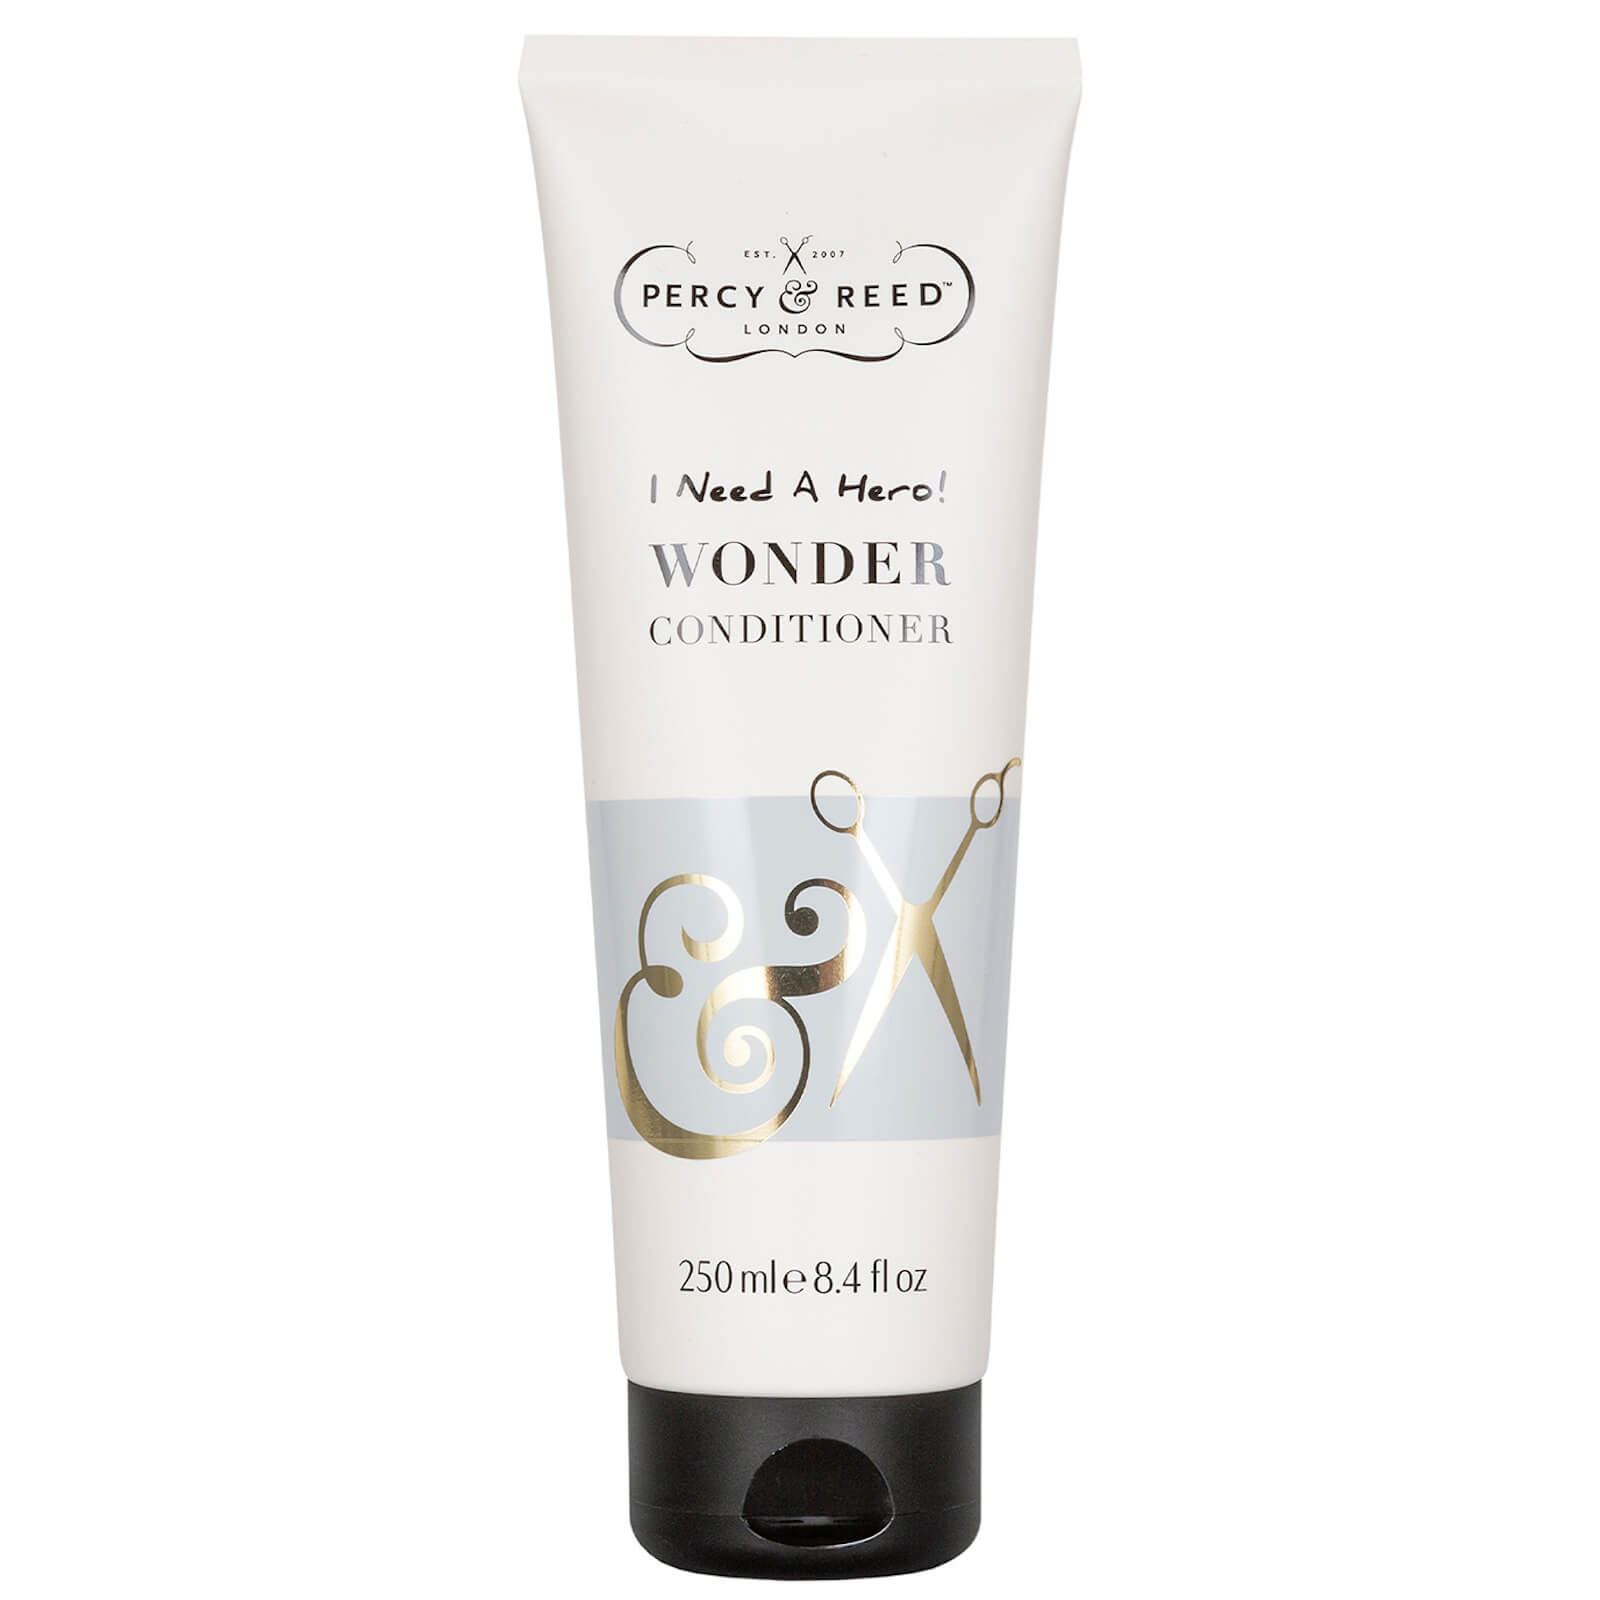 Percy & Reed I Need a Hero! Wonder Conditioner 250ml